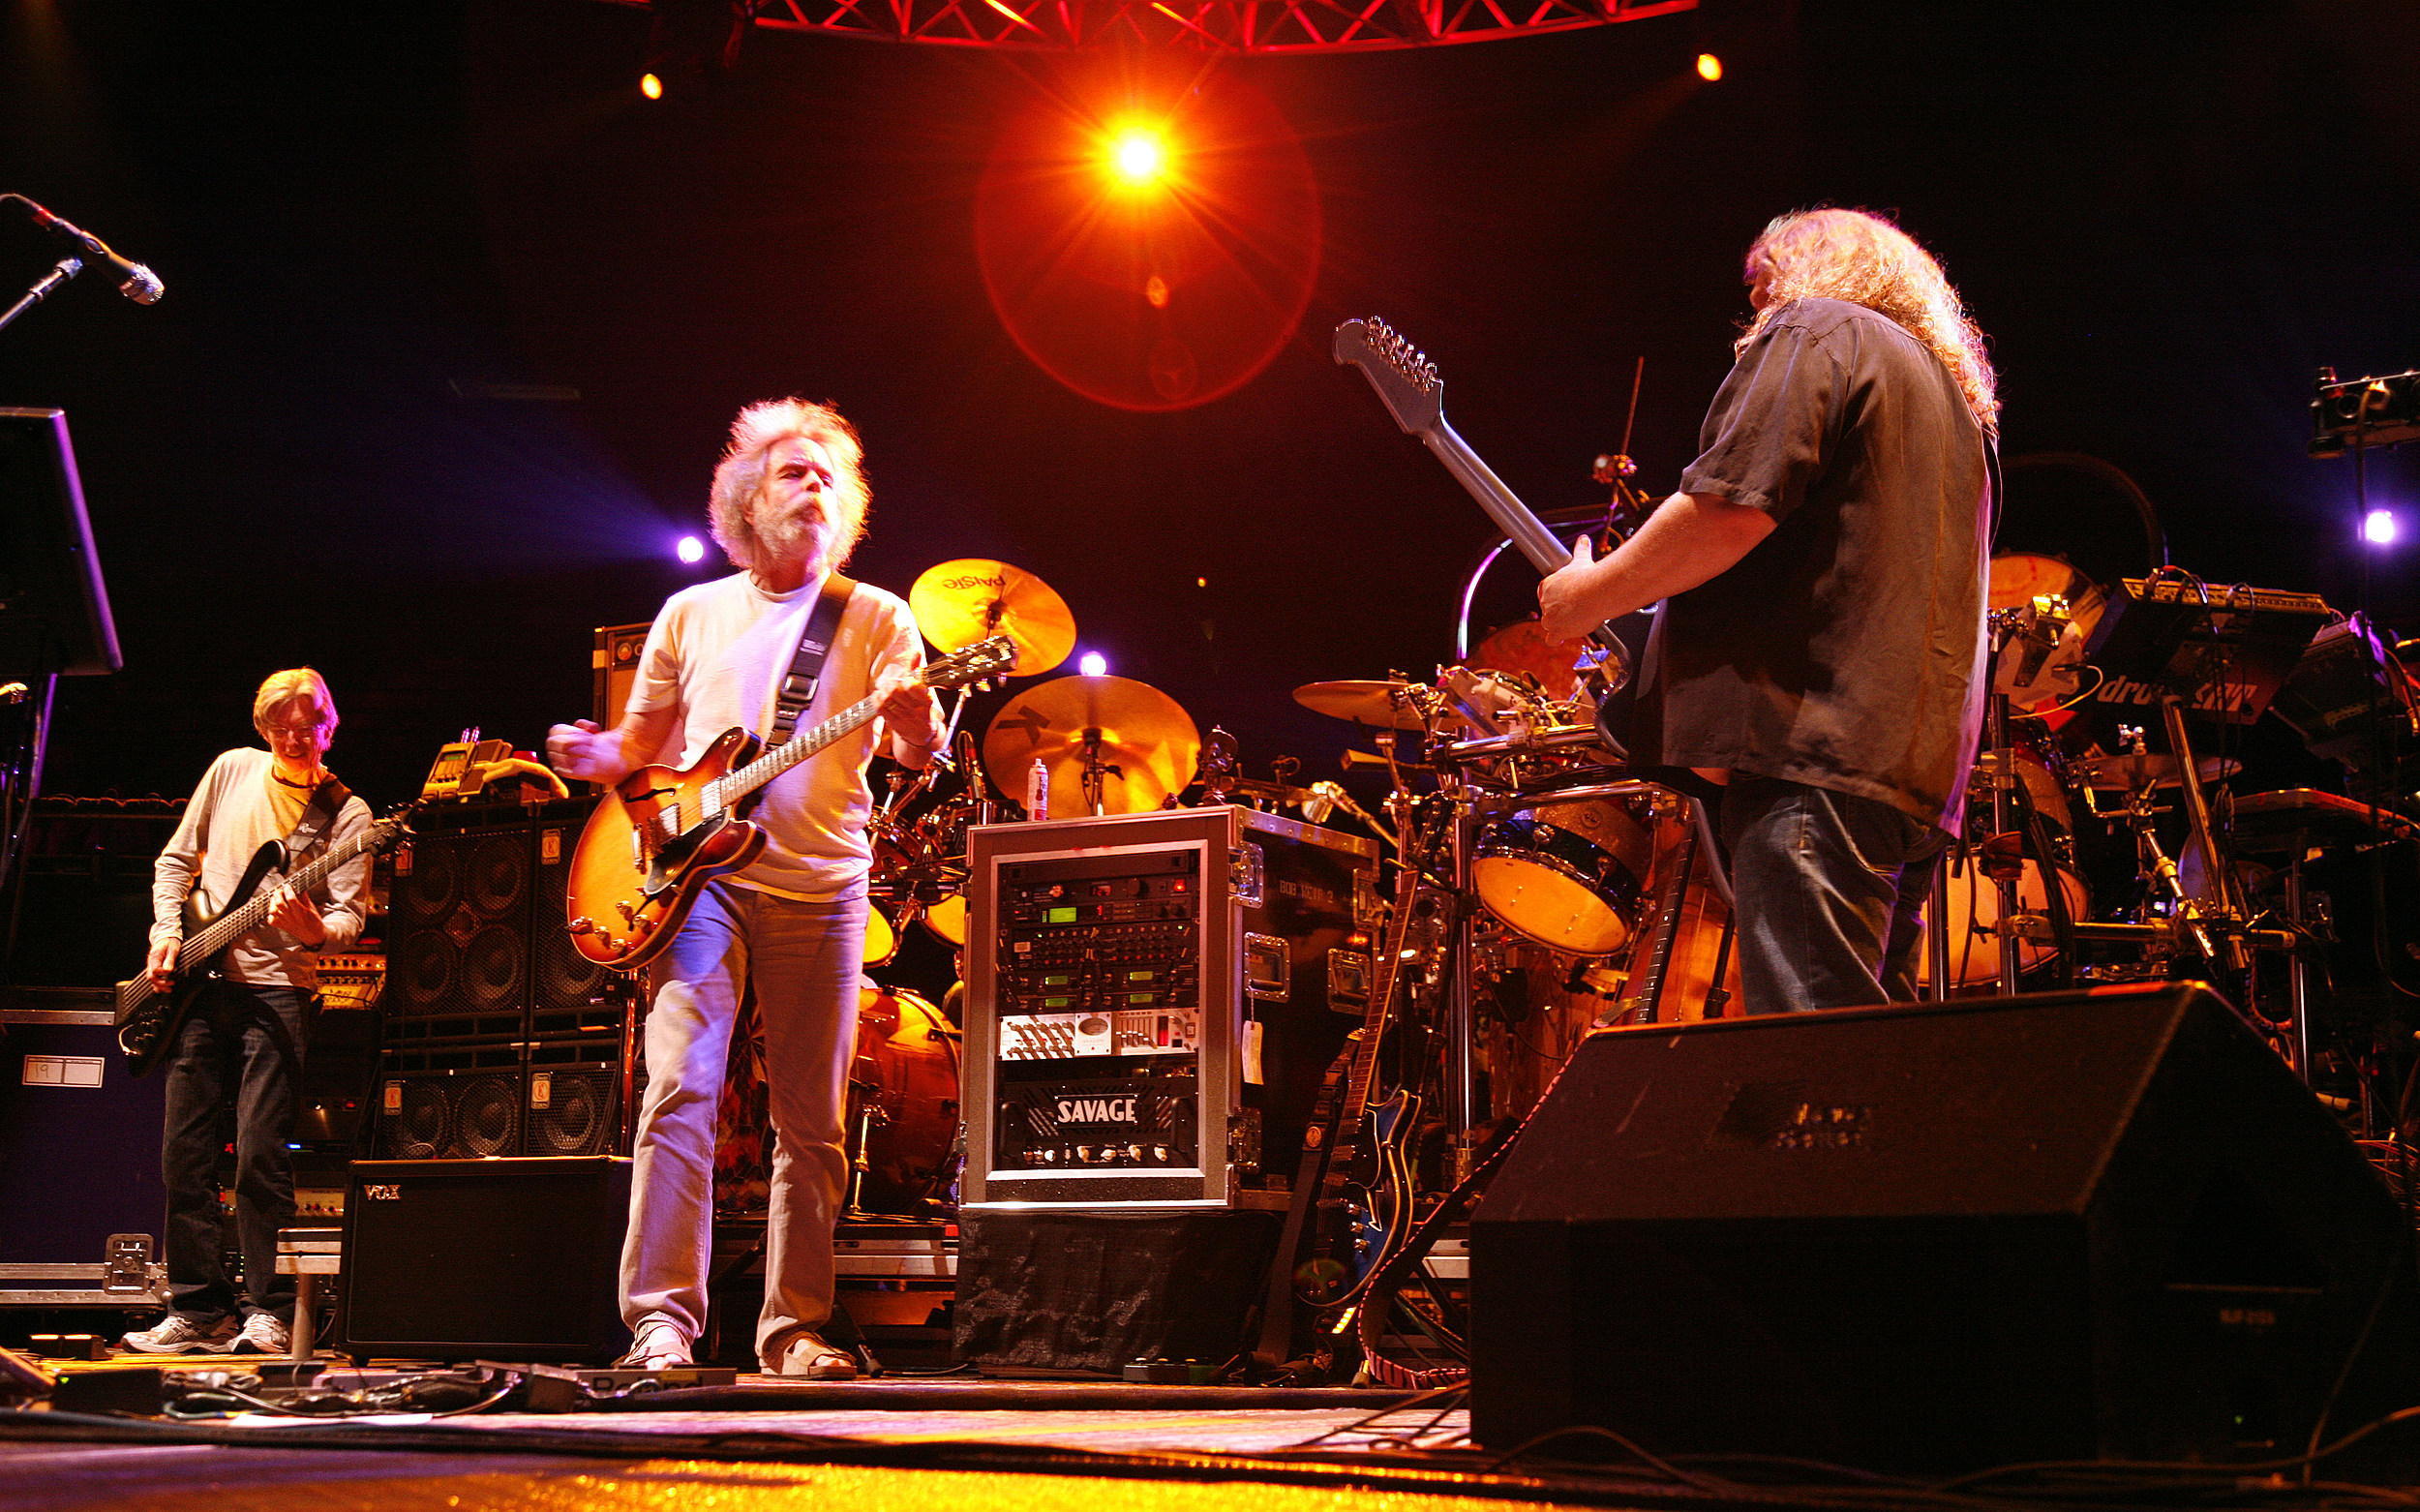 Who Played in Maine the Most? Phish or The Grateful Dead